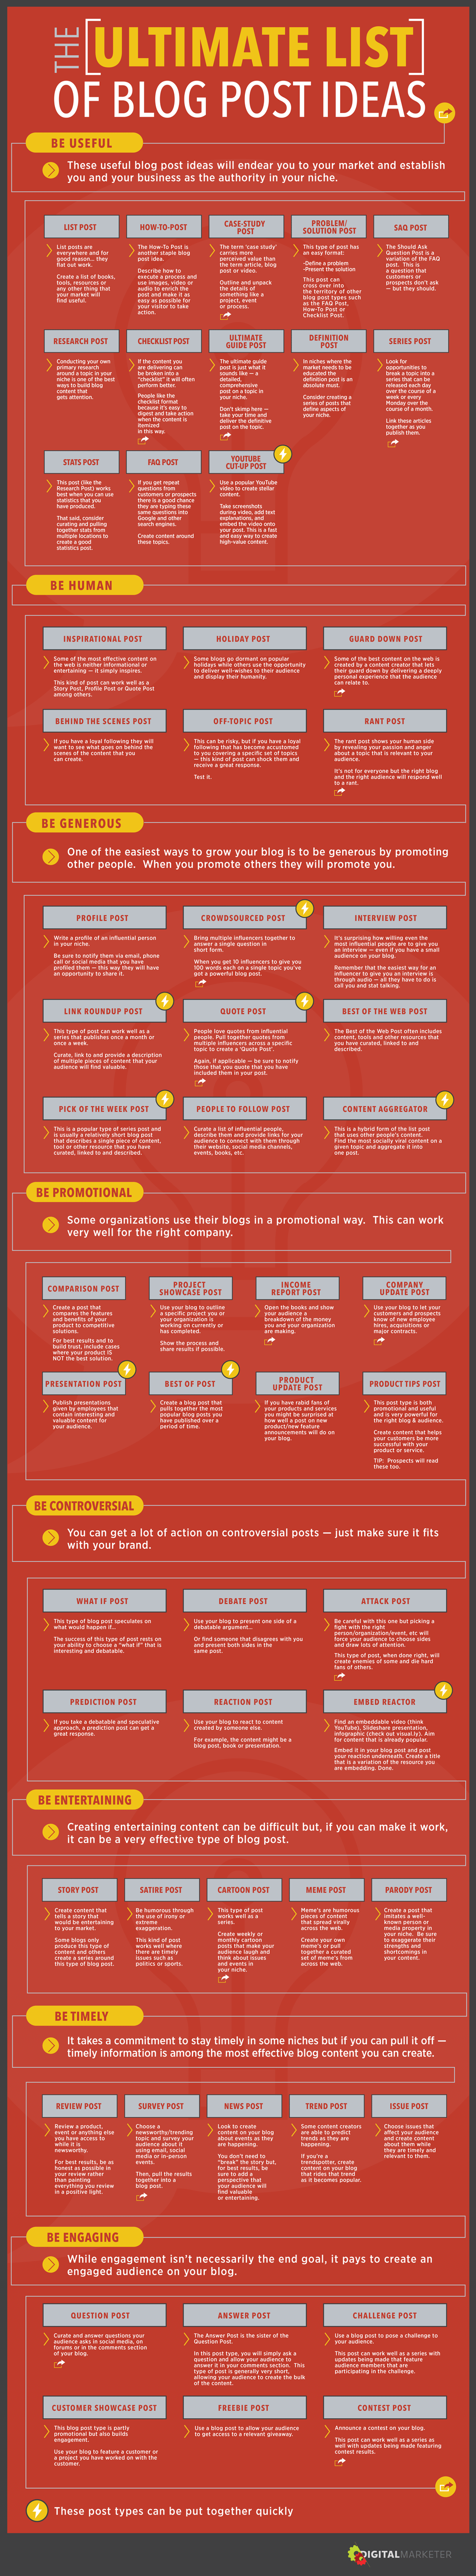 ultimate list of blog post ideas infographic